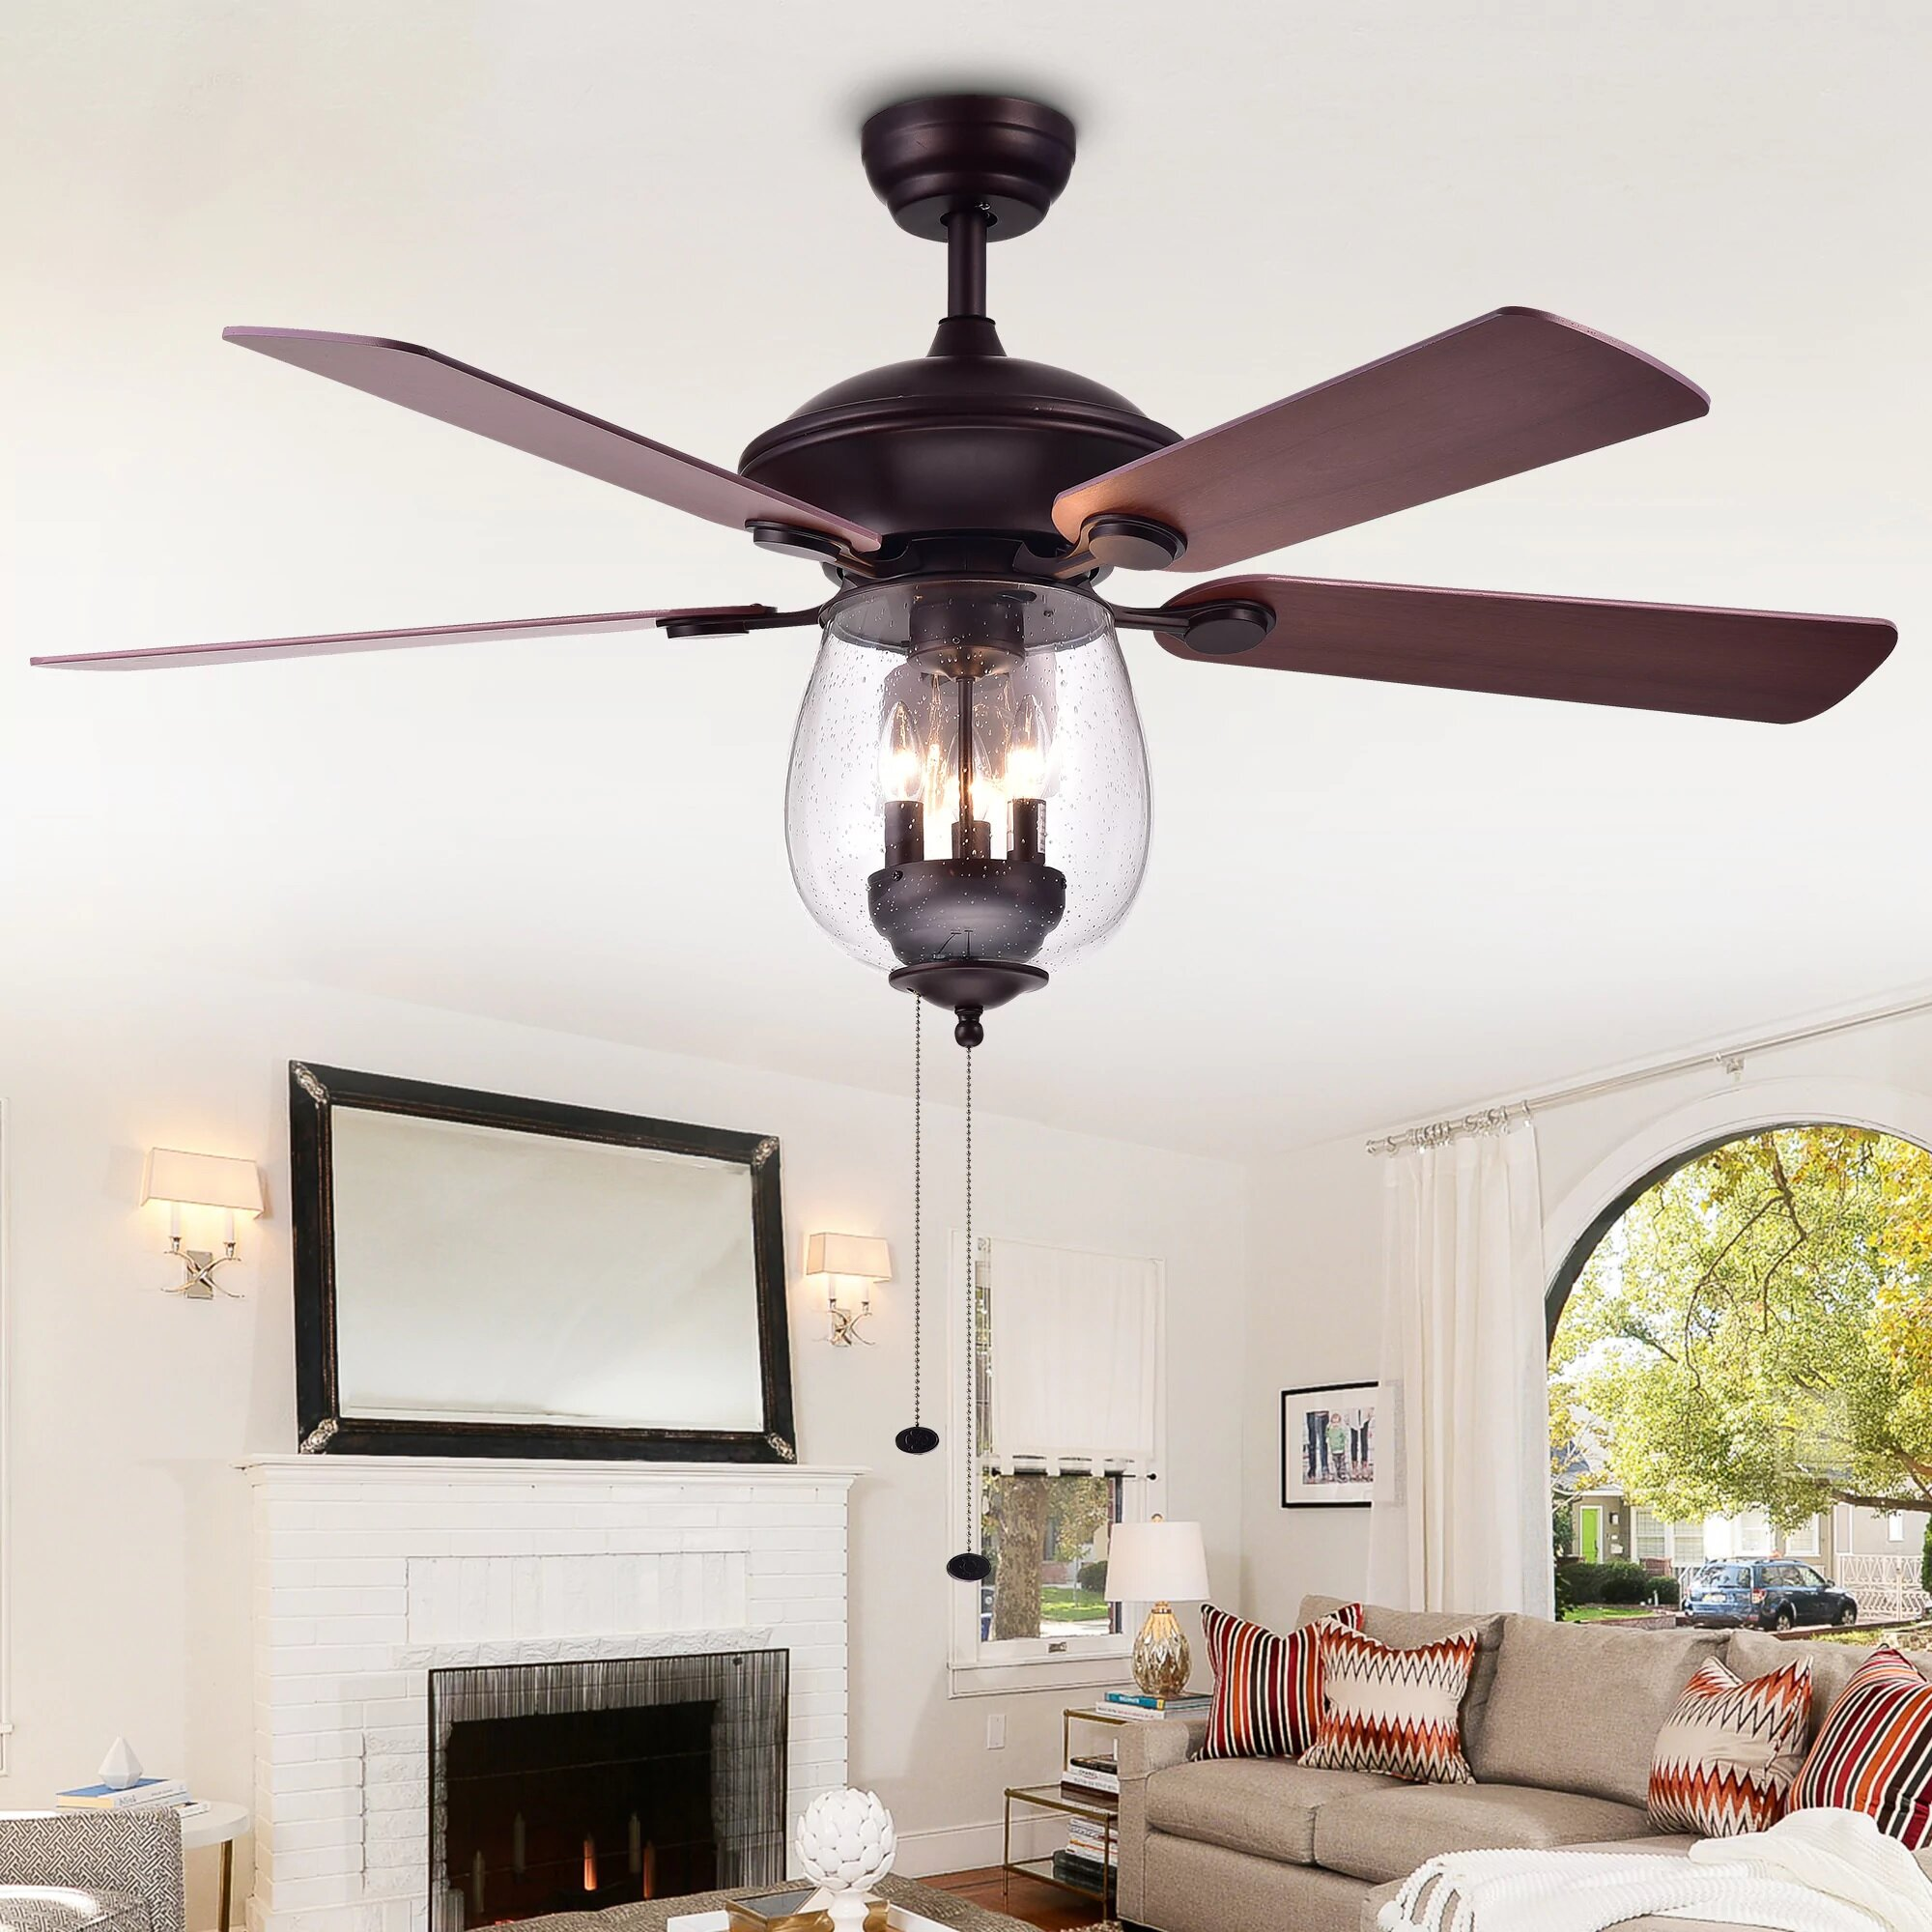 Darby Home Co Rueben 5 Blade Ceiling Fan & Reviews